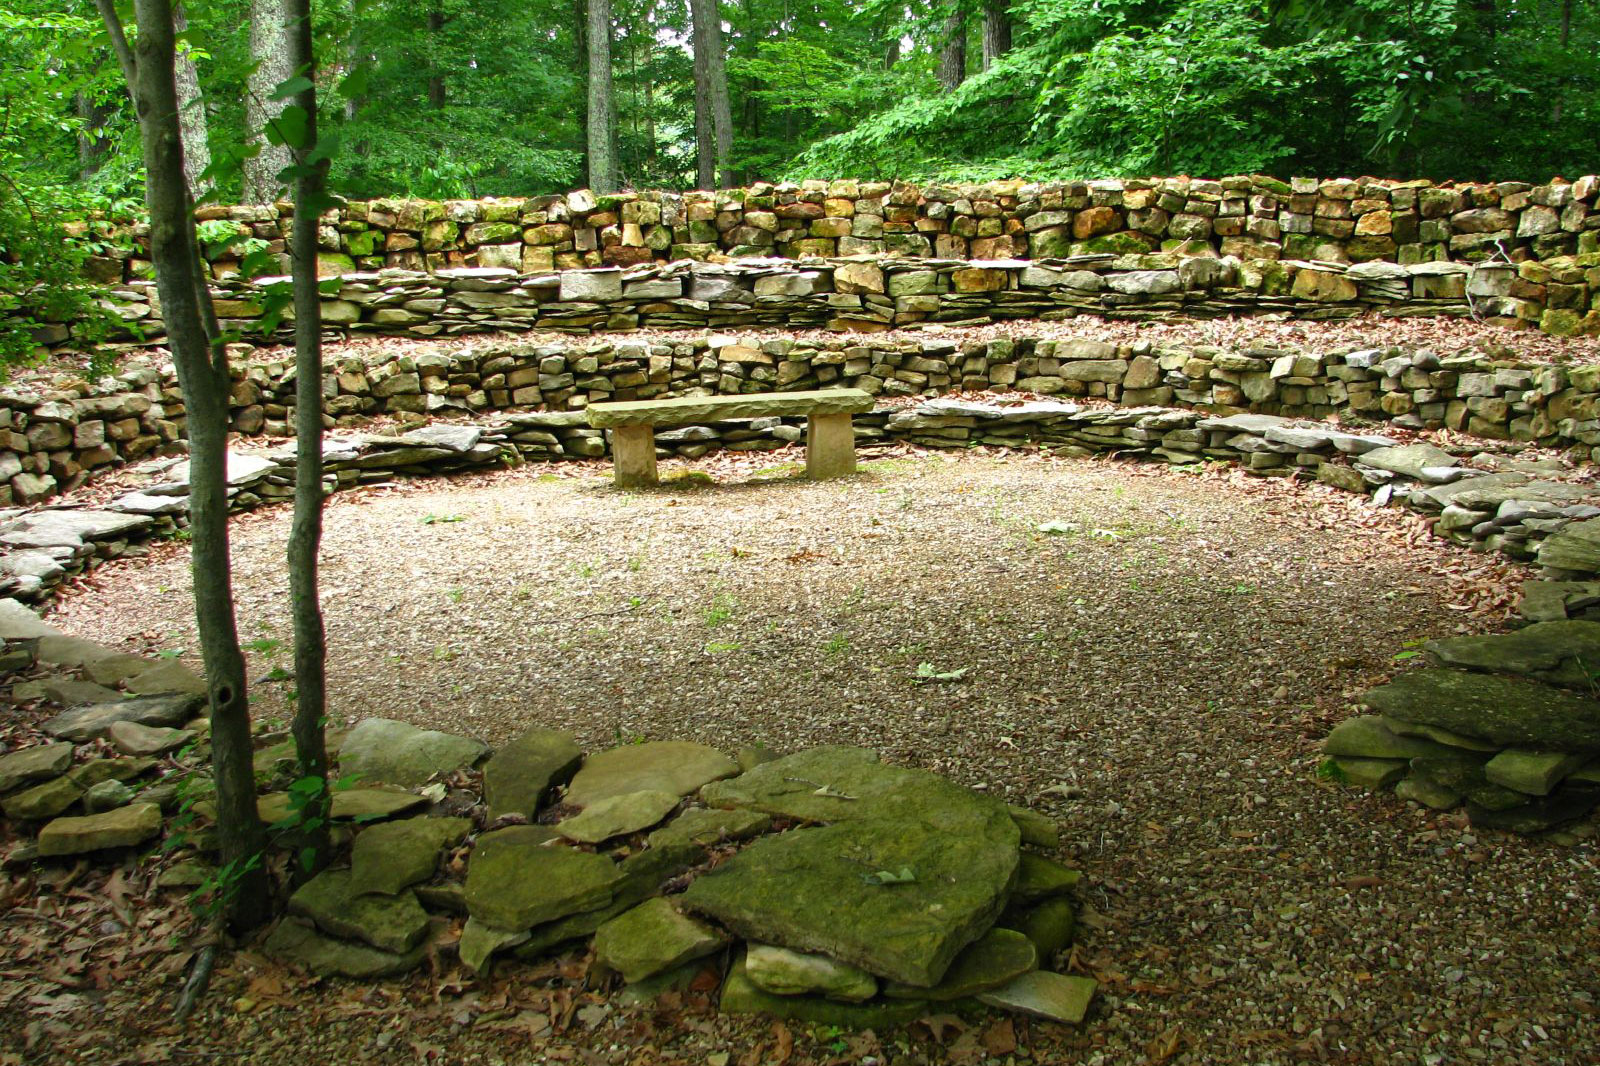 The Wichahpi Commemorative Stone Wall is a moving tribute to the builder's great-great grandmother. (Photo: Laura Bell/Surface)